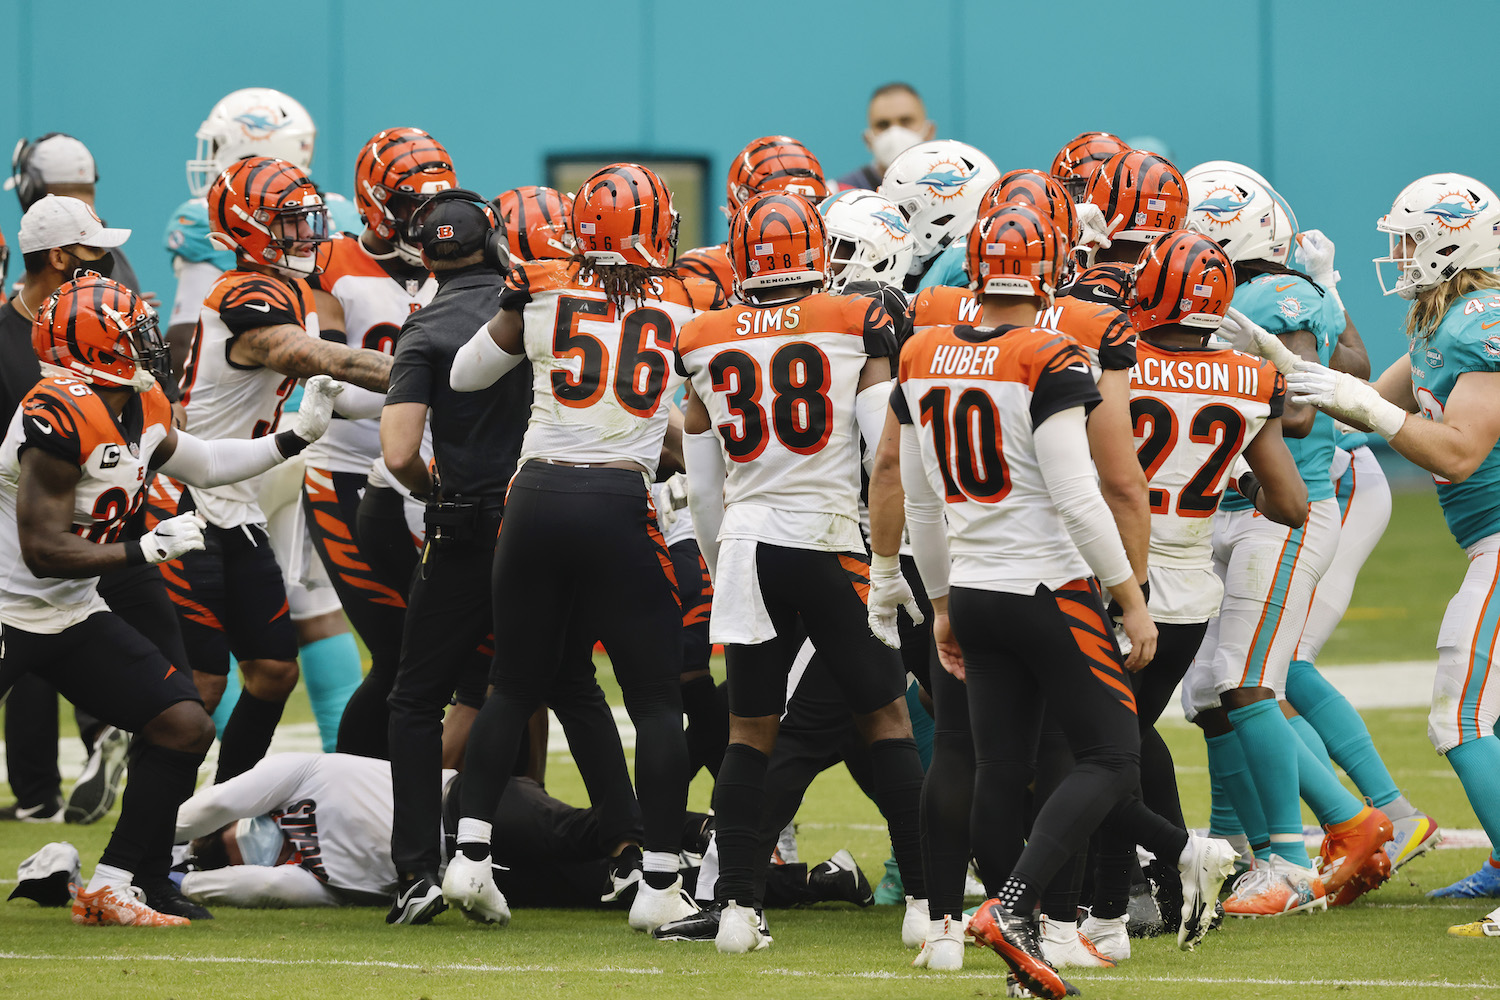 Cincinnati Bengals and the Miami Dolphins